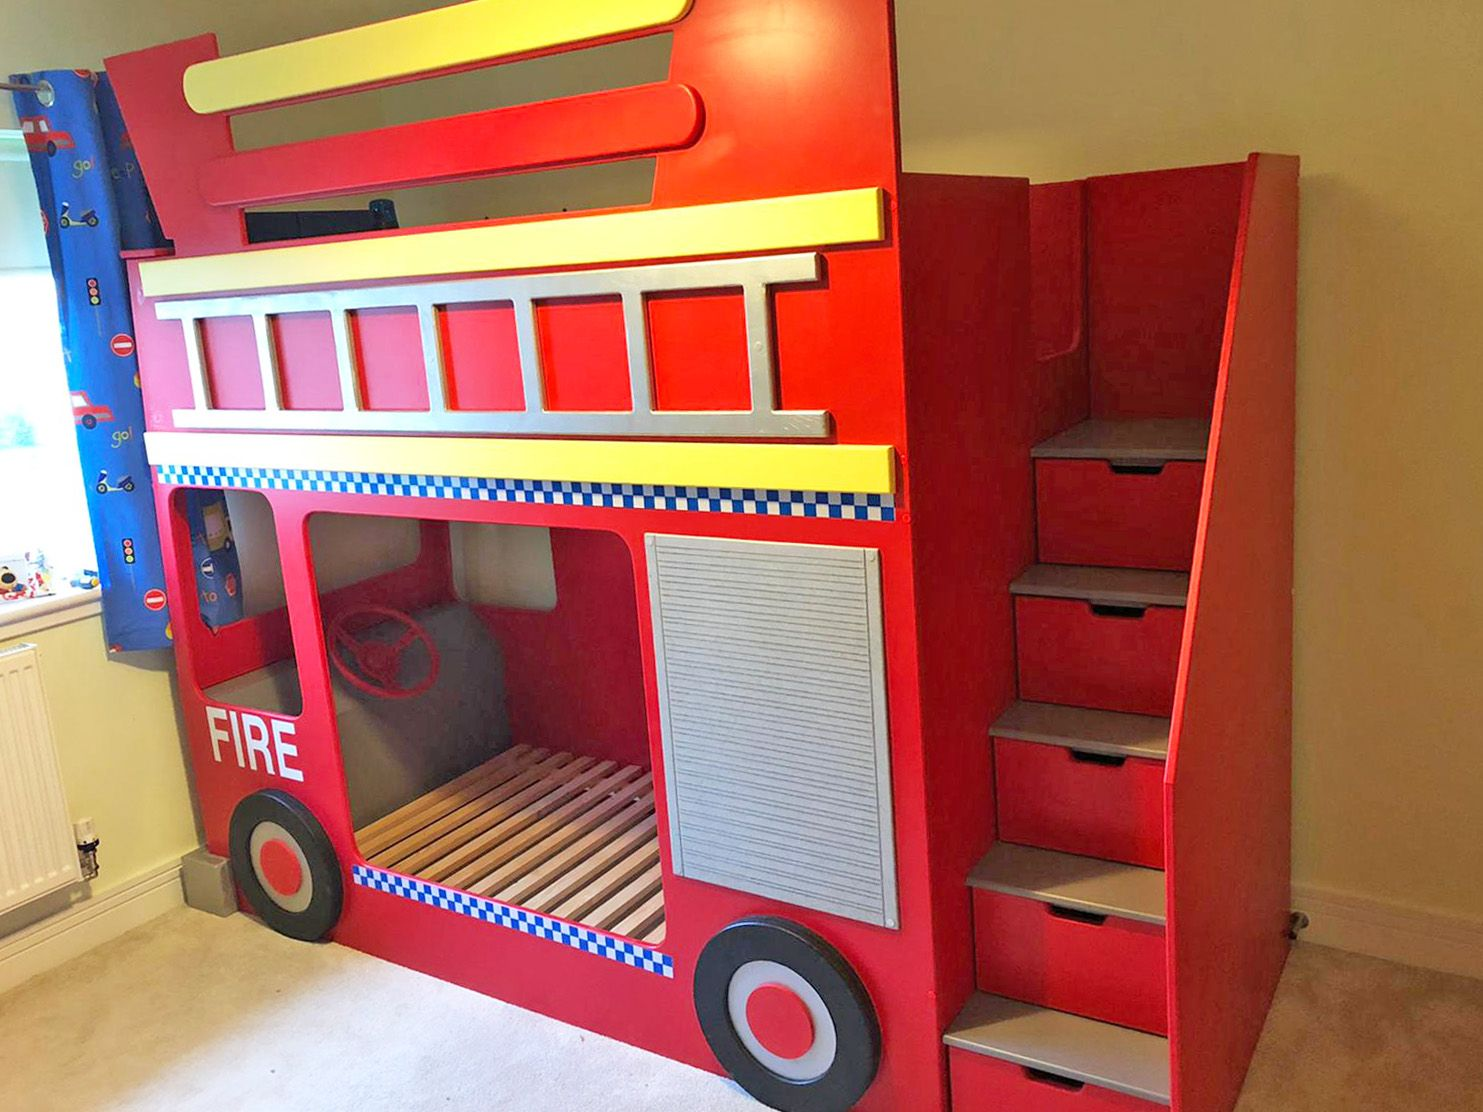 Fire Engine Themed Bunk Bed in 2020 Bunk beds, Bed